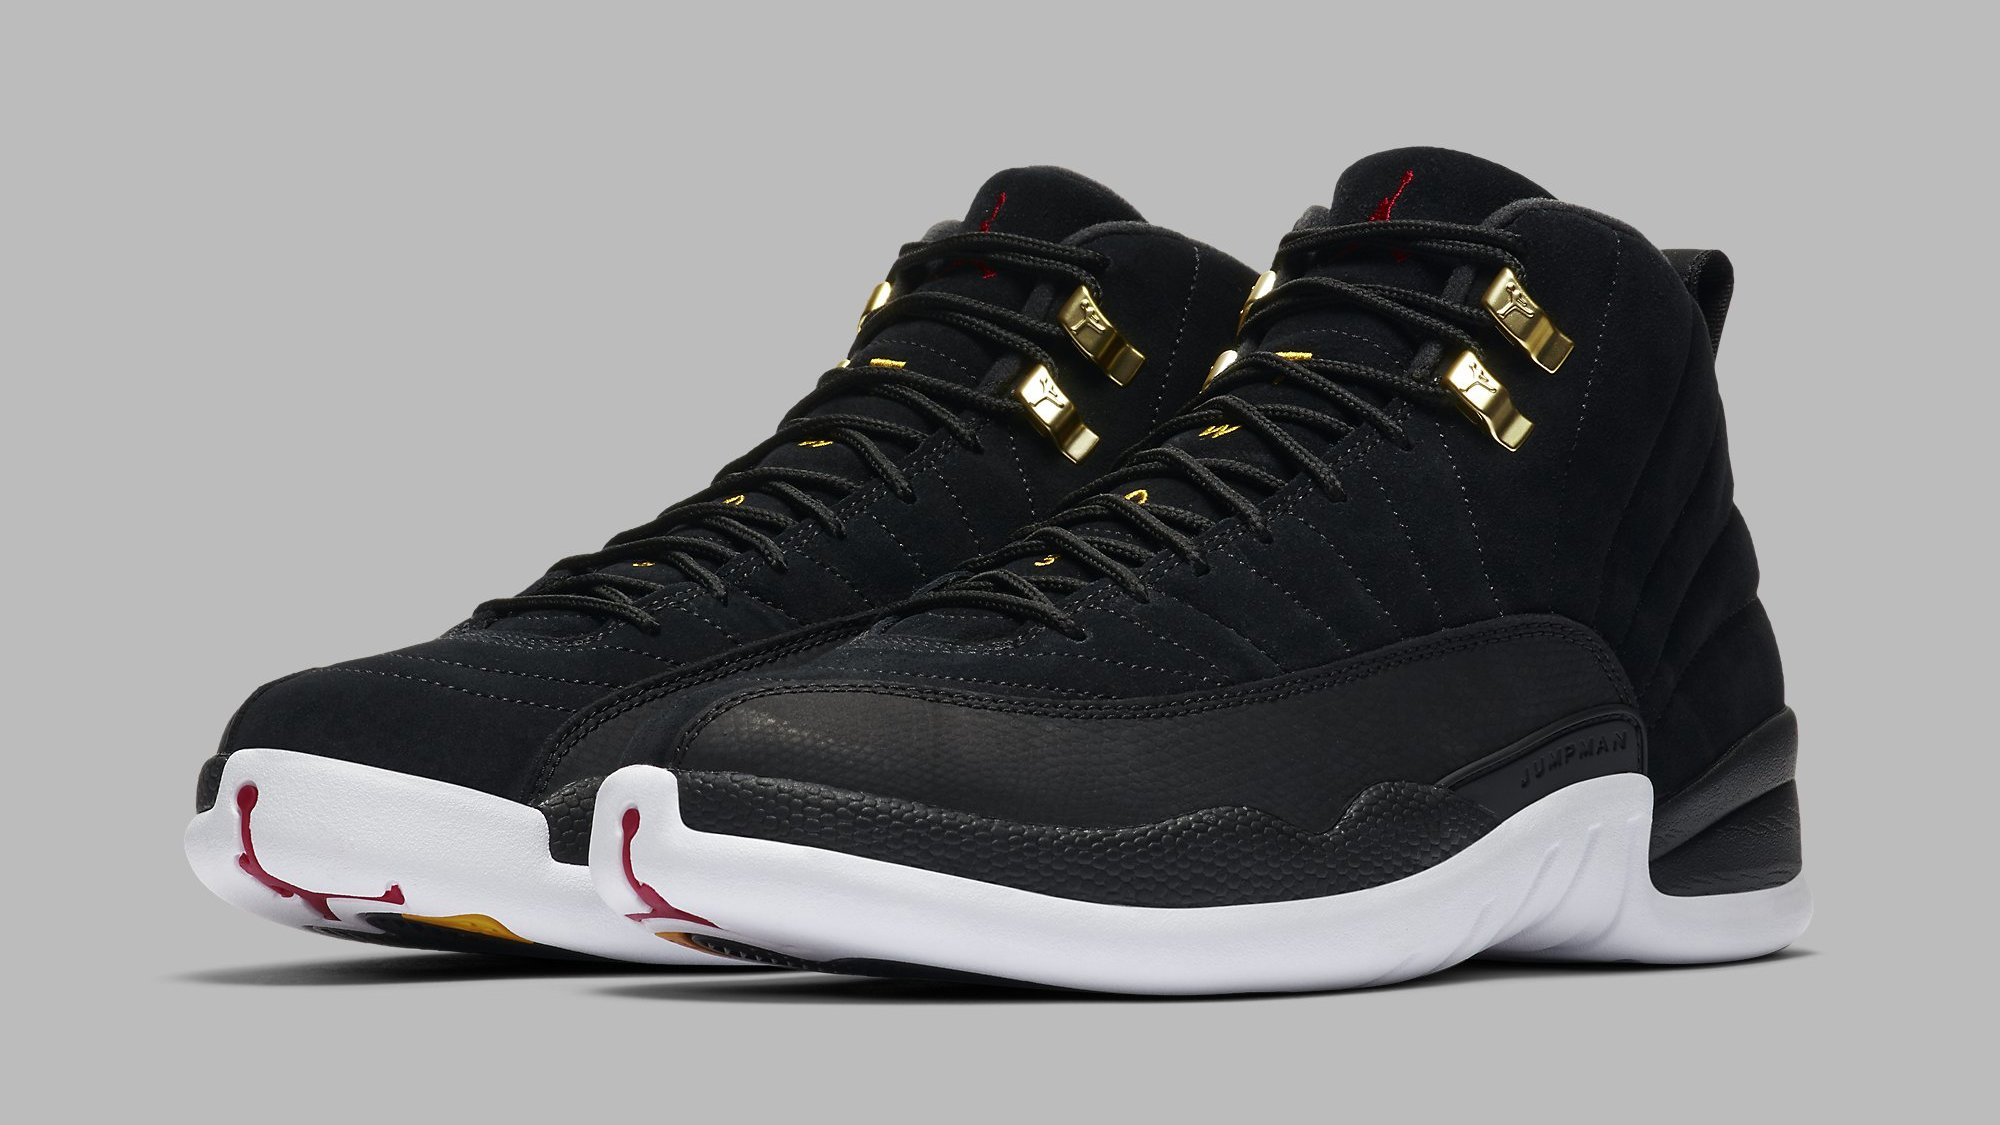 Air Jordan 12 Retro Black White Taxi Black 130690 017 Release